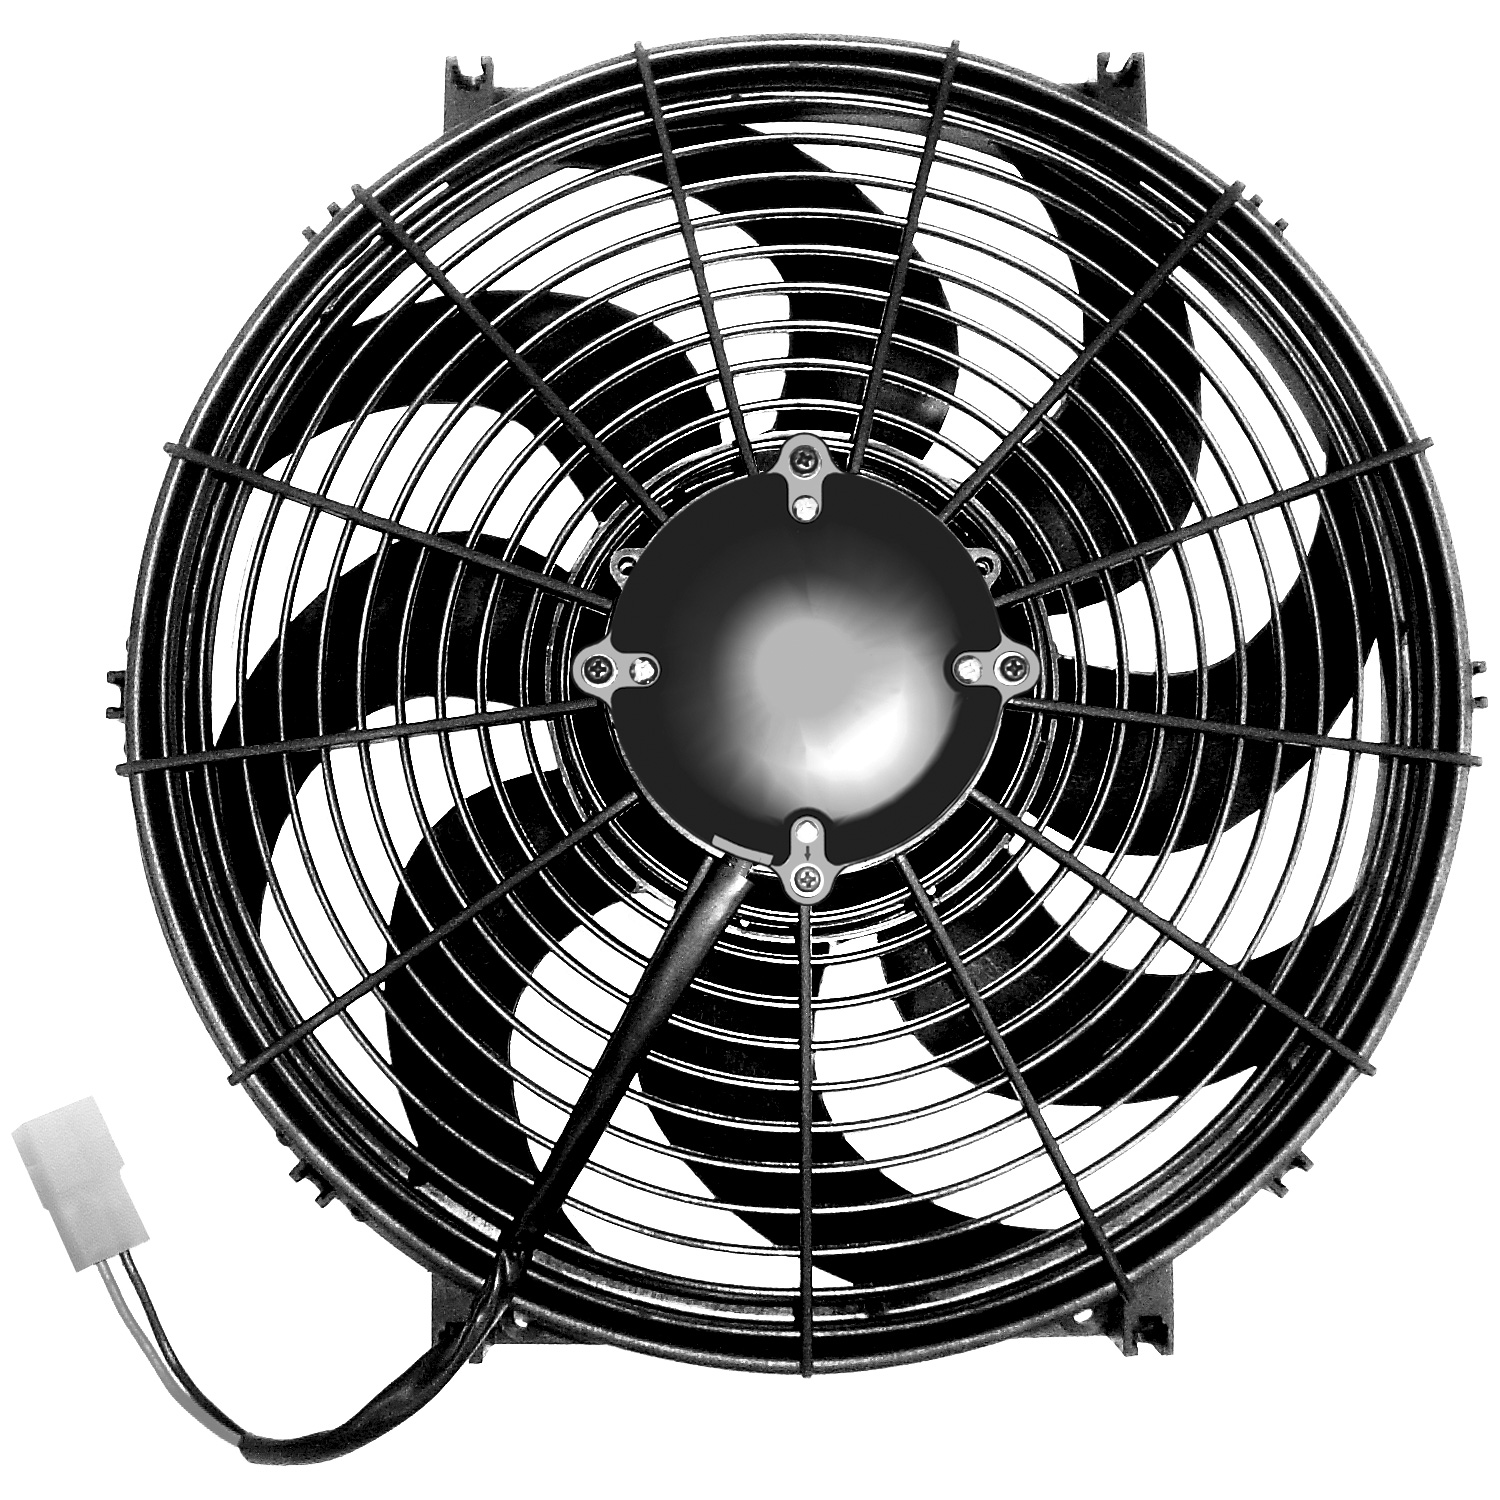 New Electric Fan : New from summit racing equipment maradyne electric fans